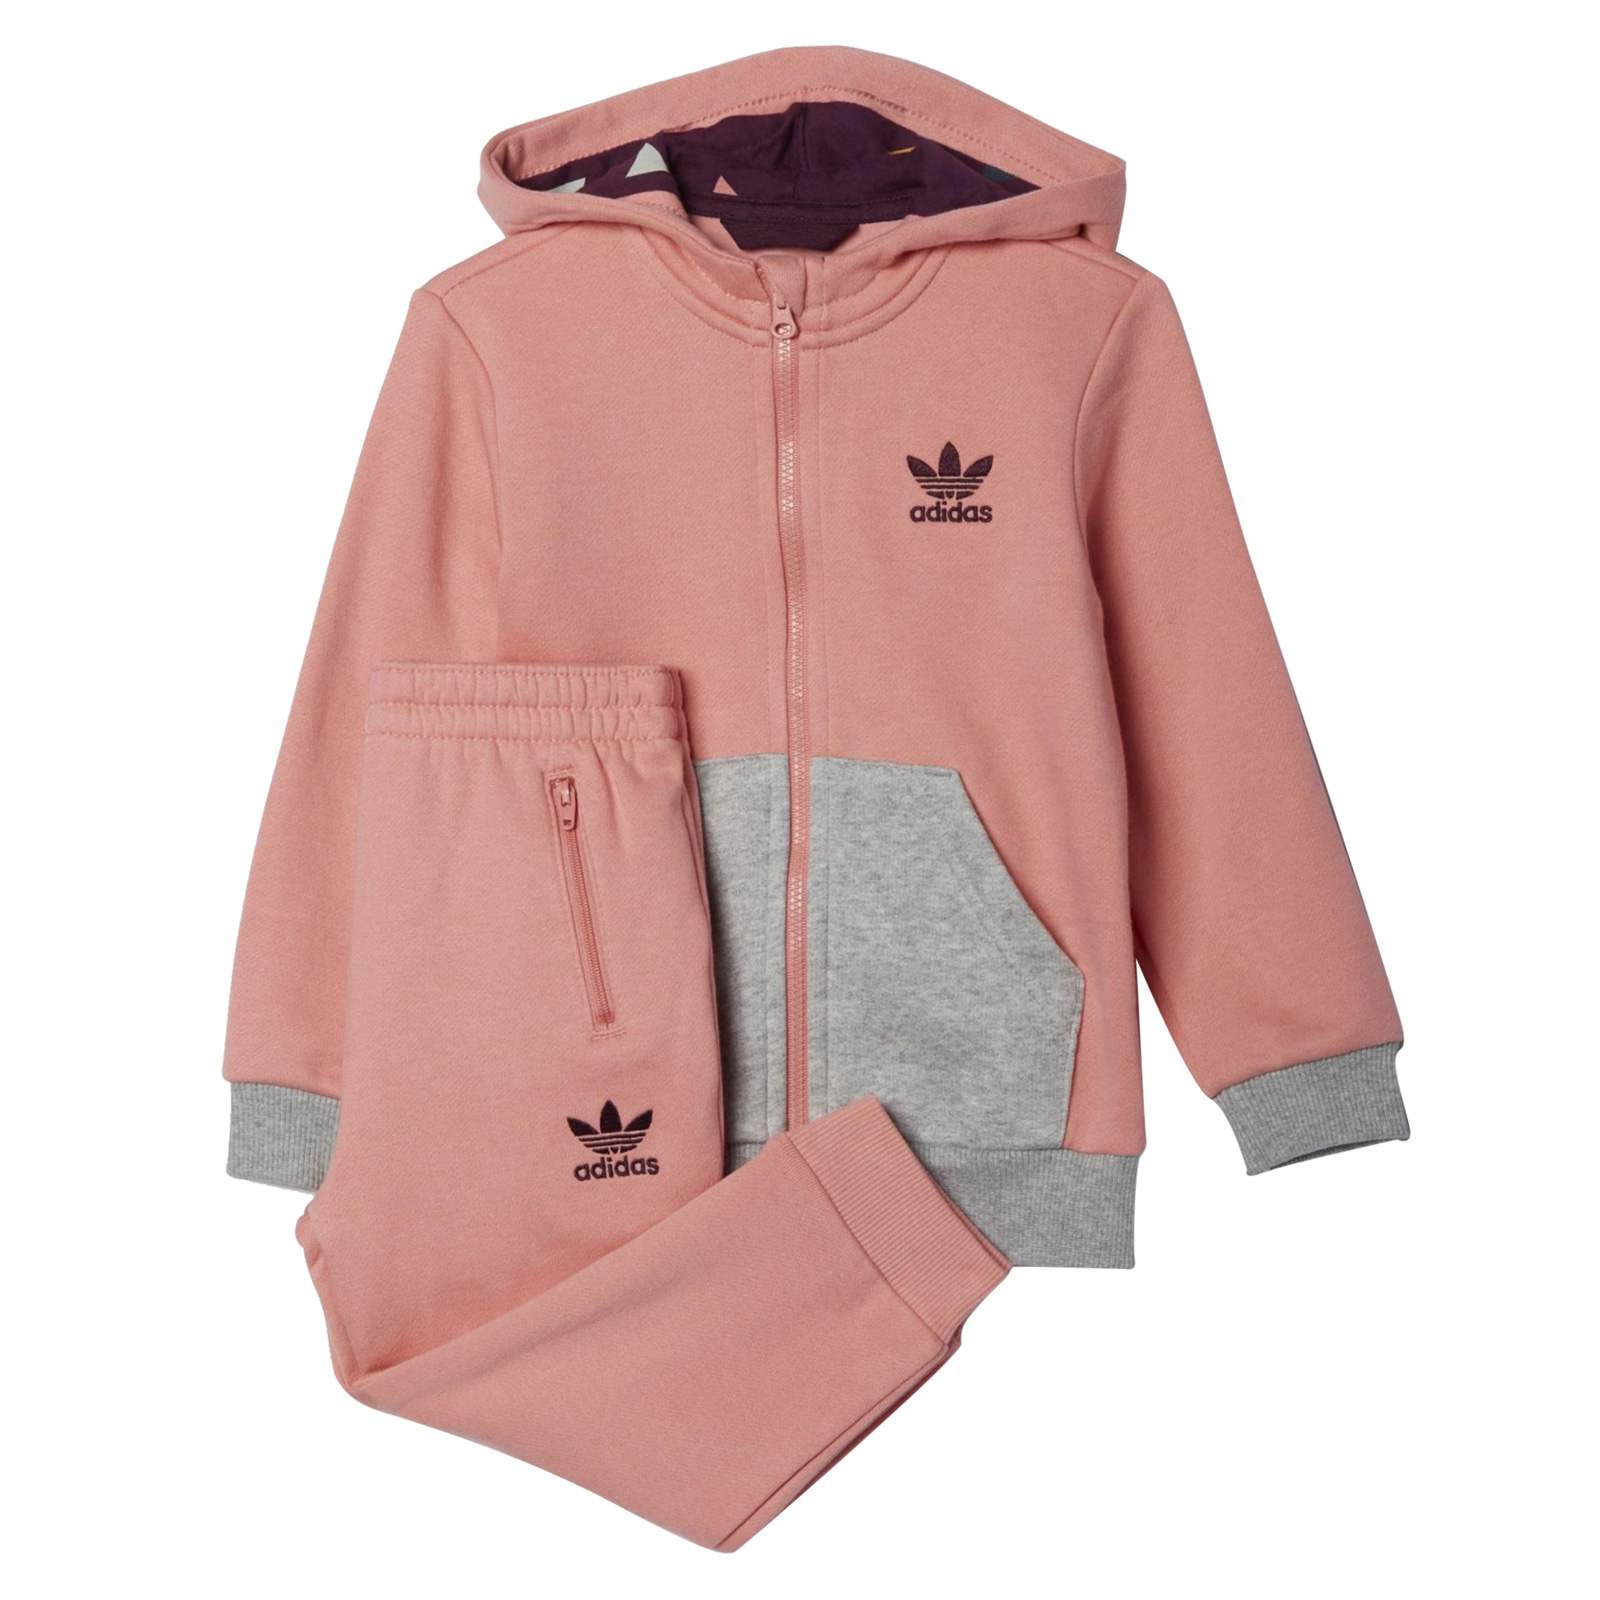 wholesale price outlet on sale look out for adidas Kinder Mädchen Jogger Sweatjacke + Hose kuschelig Rosa Grau Anzug Set